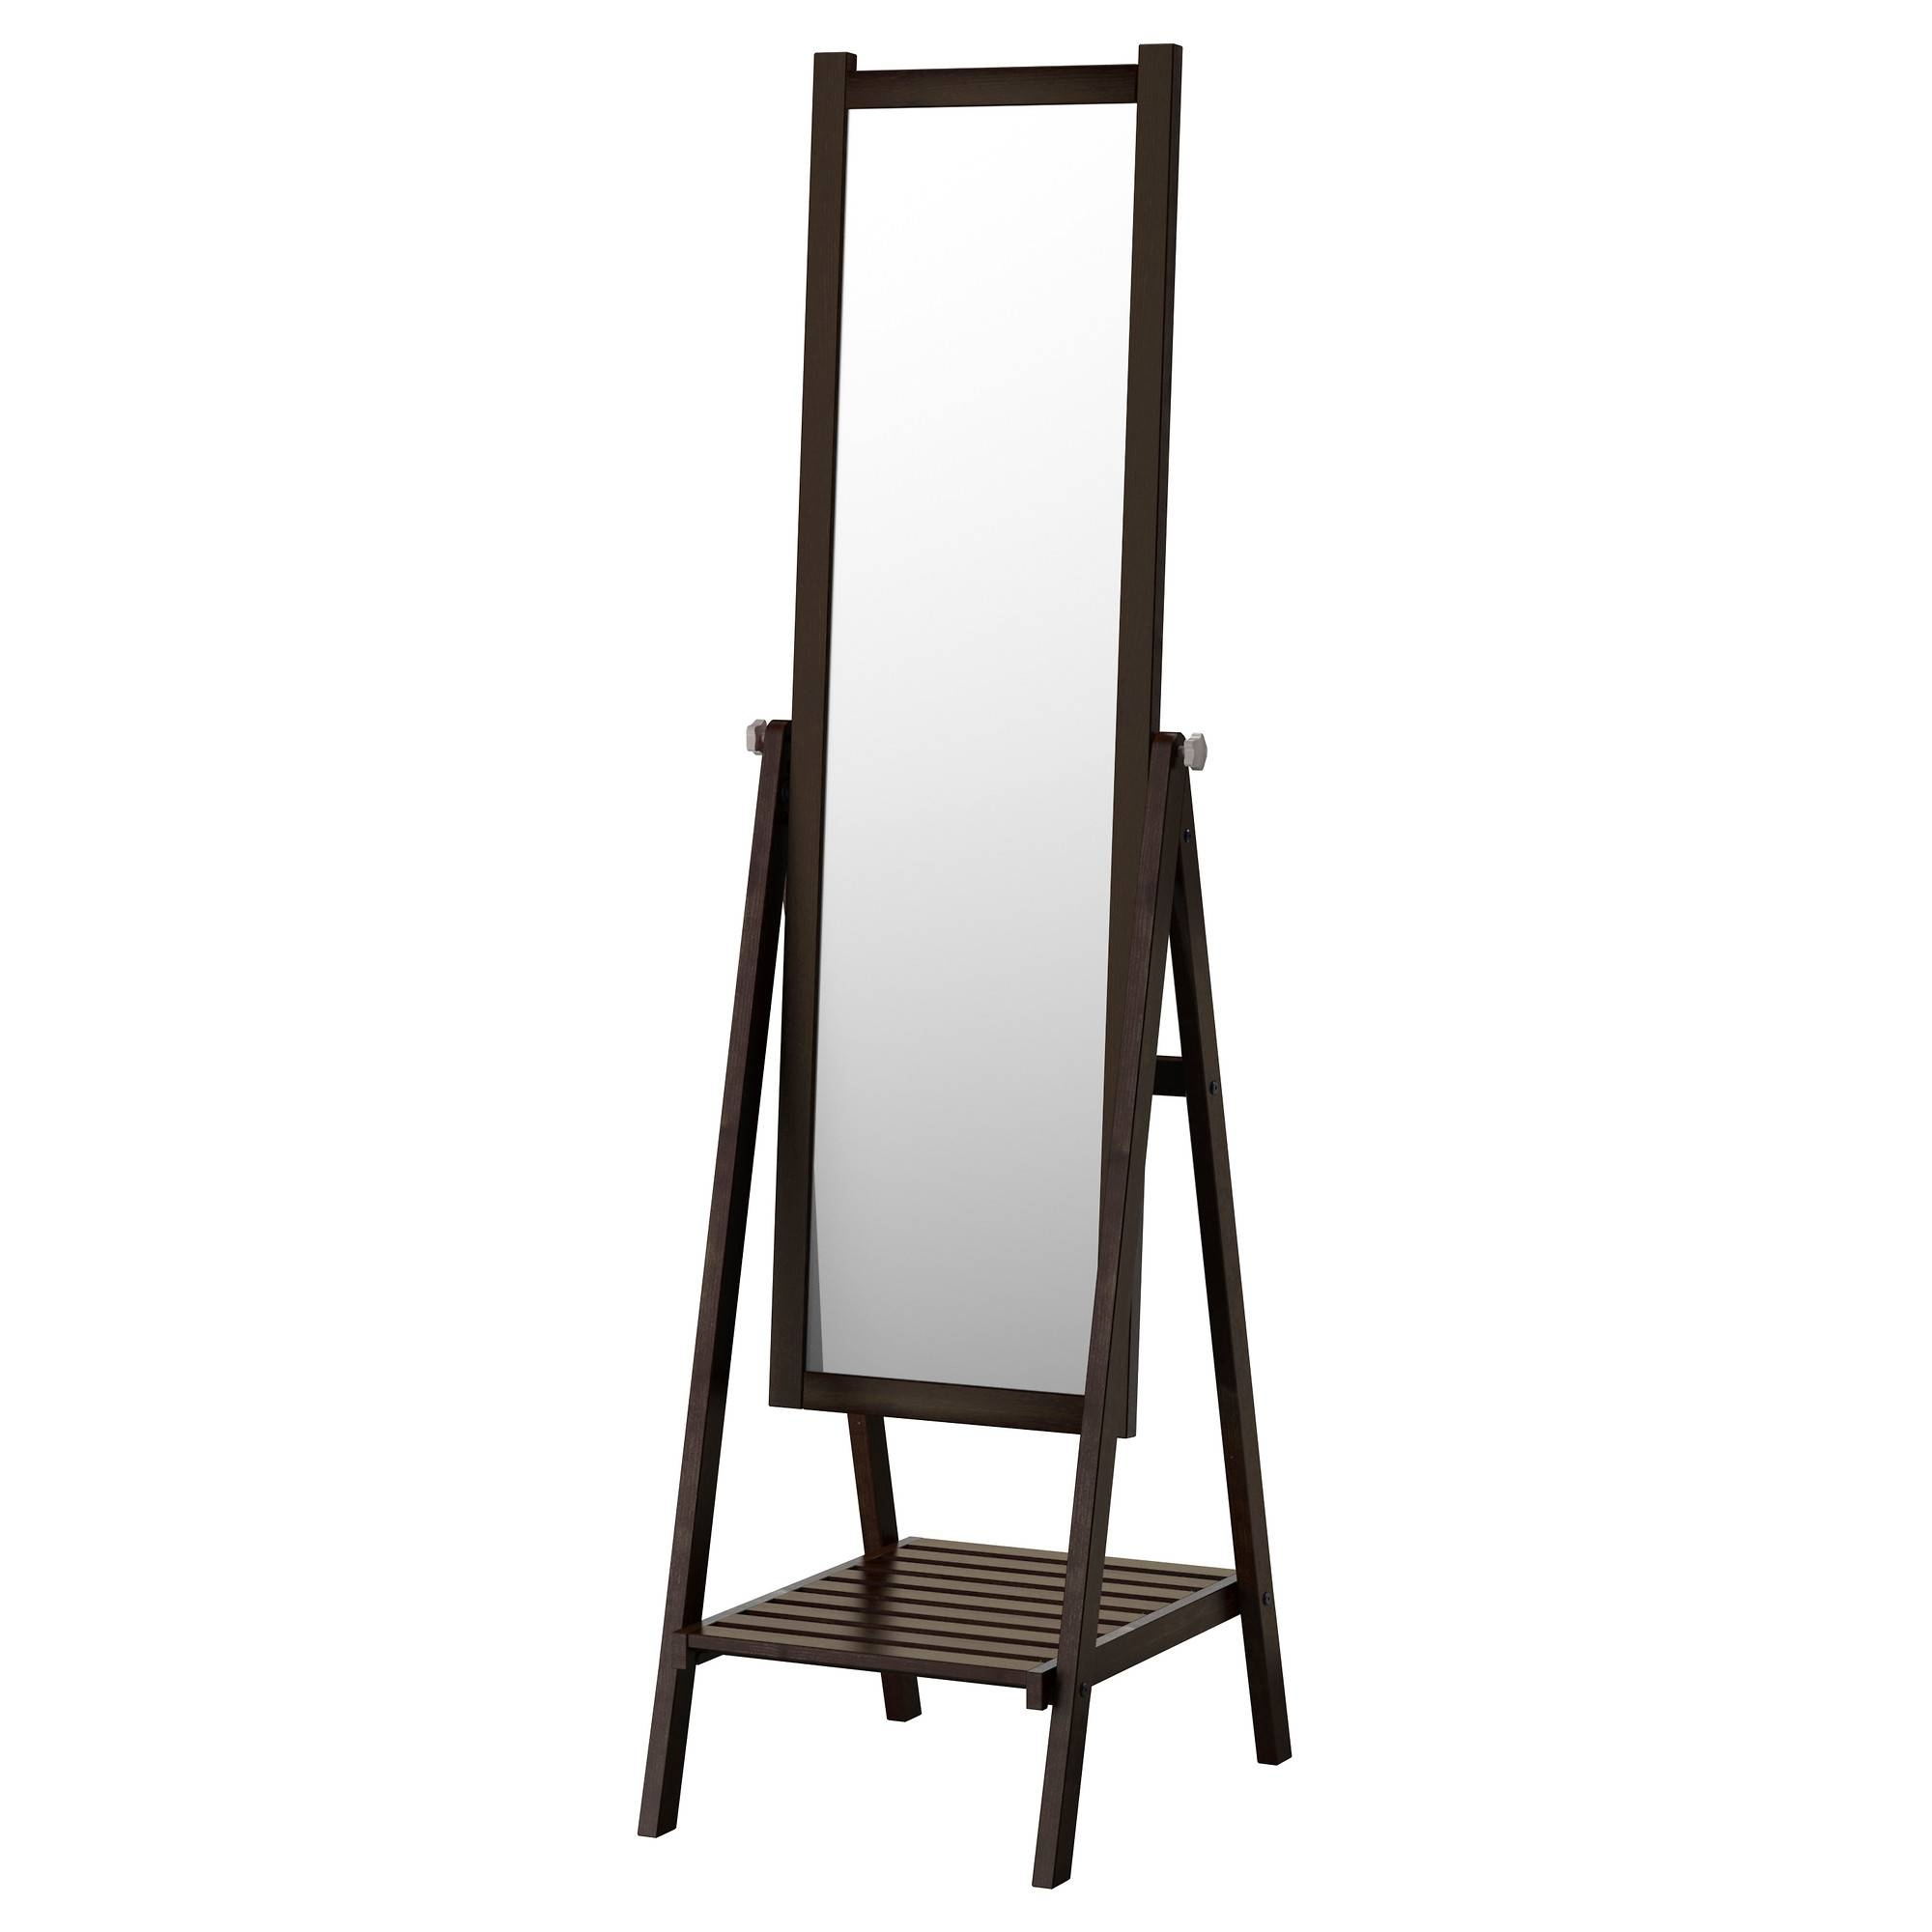 Full Length Mirrors – Ikea Regarding Extra Large Free Standing Mirrors (View 18 of 25)